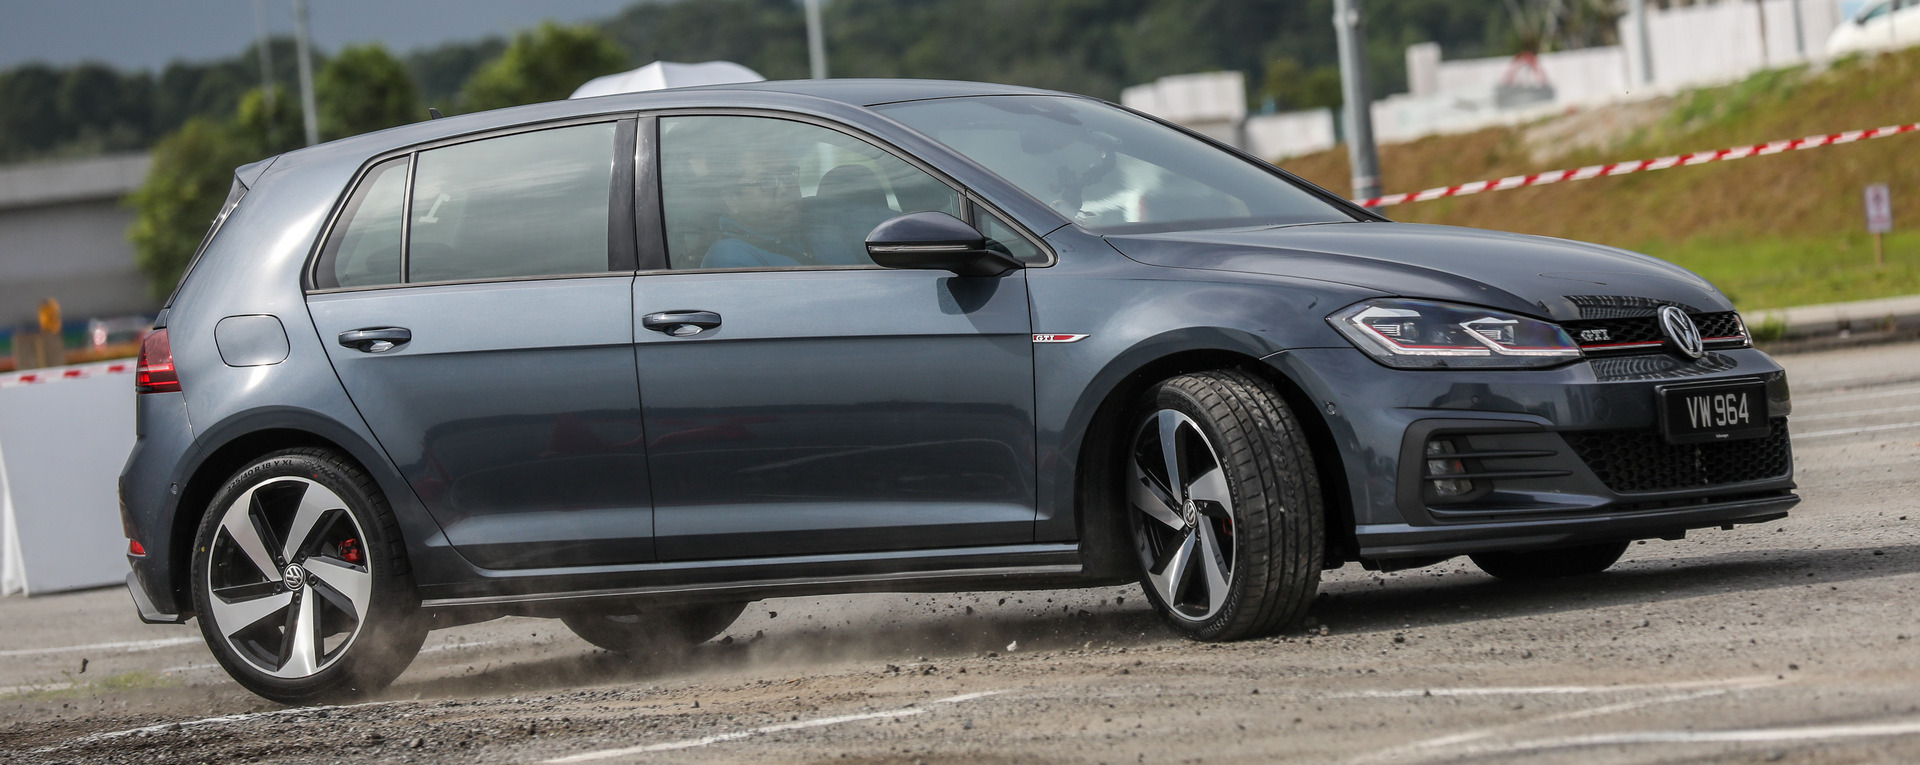 volkswagen golf gti mk7 5 review still the hole in one